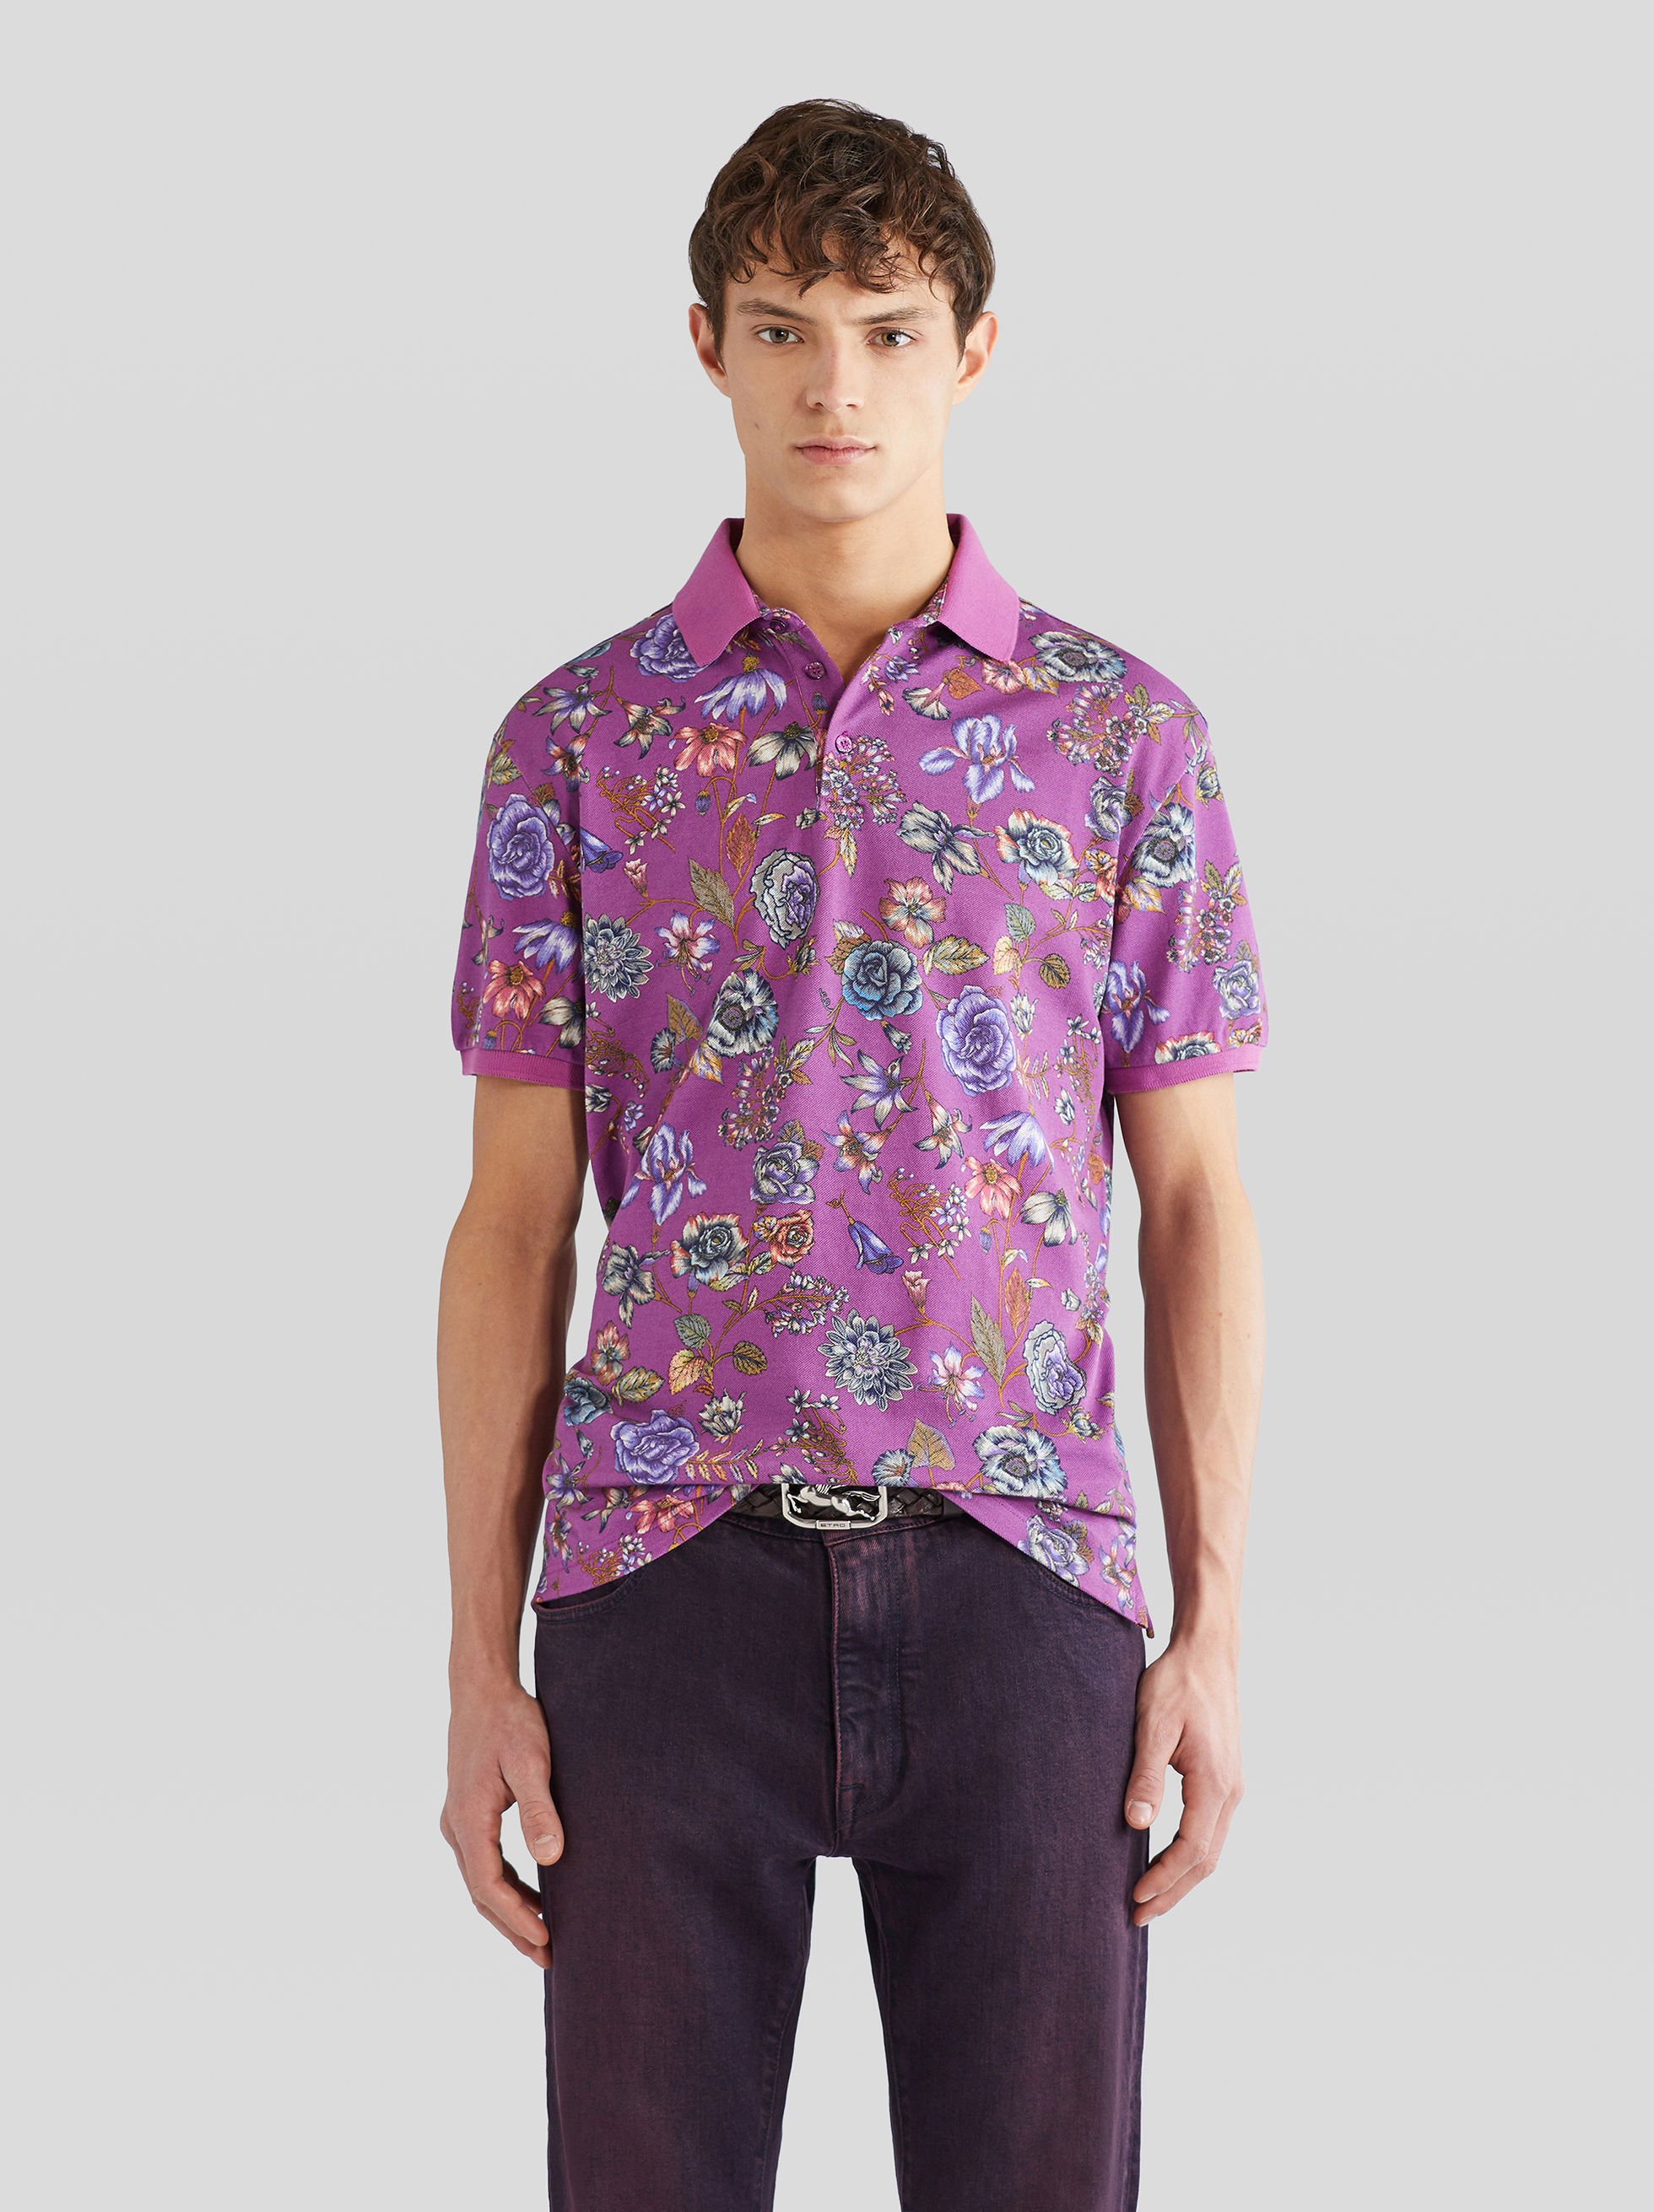 PIQUET POLO SHIRT WITH FLORAL PRINT